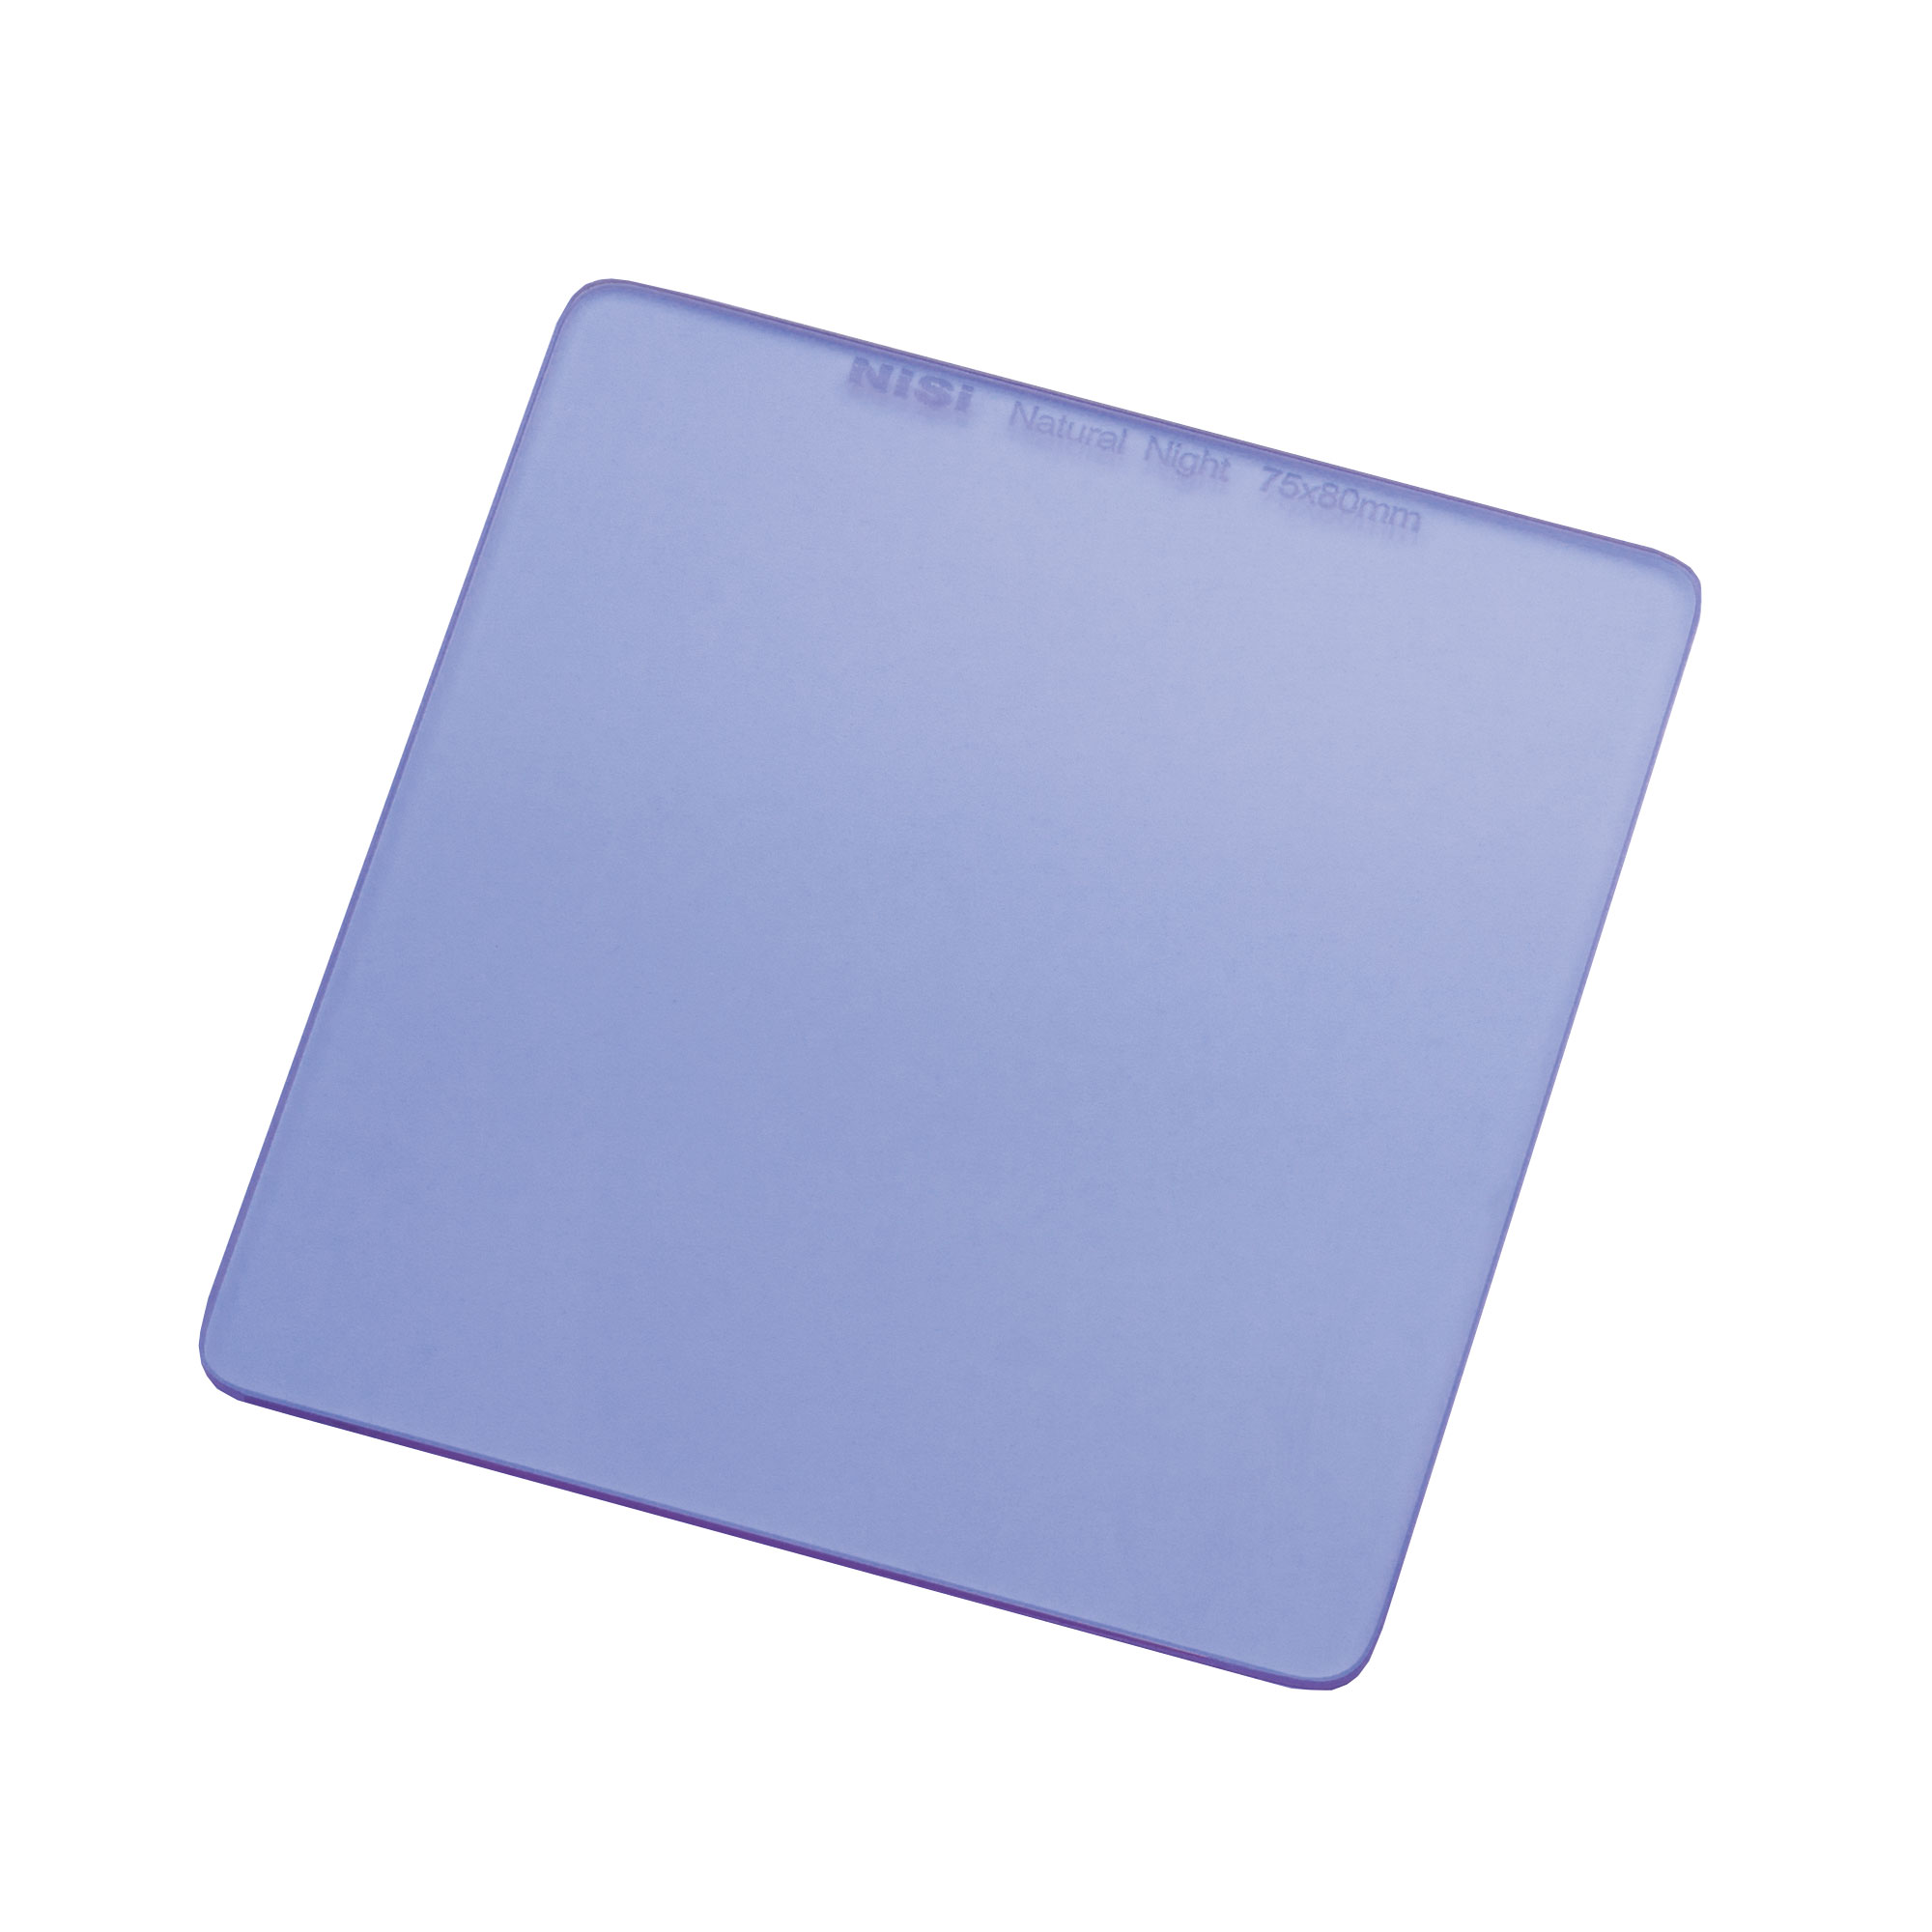 NiSi 75x80mm Natural Night Filter (Light Pollution Filter) - WideScenes  Photography & Publishing